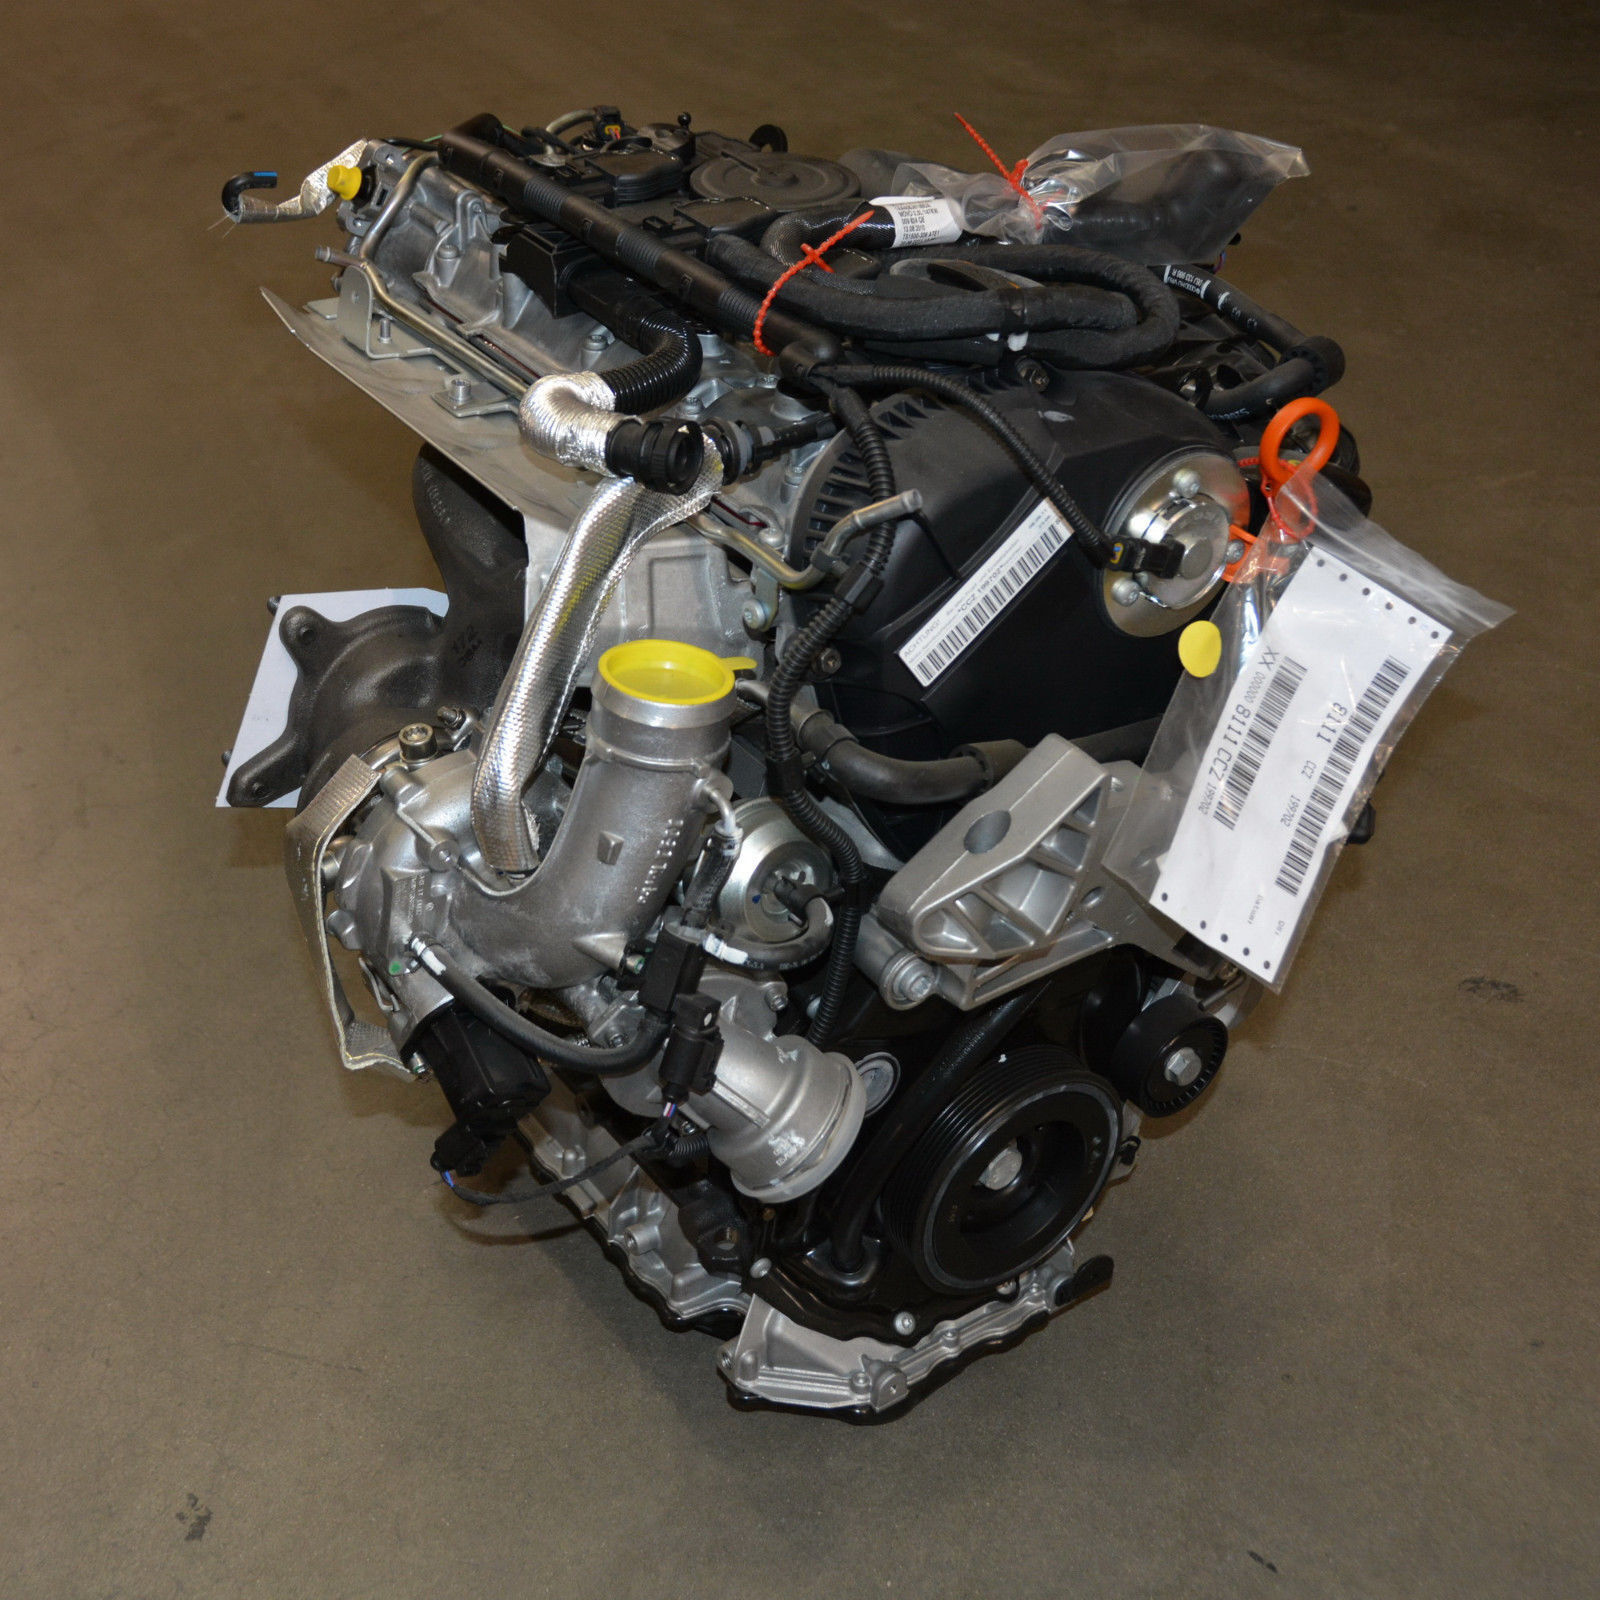 New OEM VW Audi 2.0L TFSI Complete CCTA CCZA Engine Turbo ...